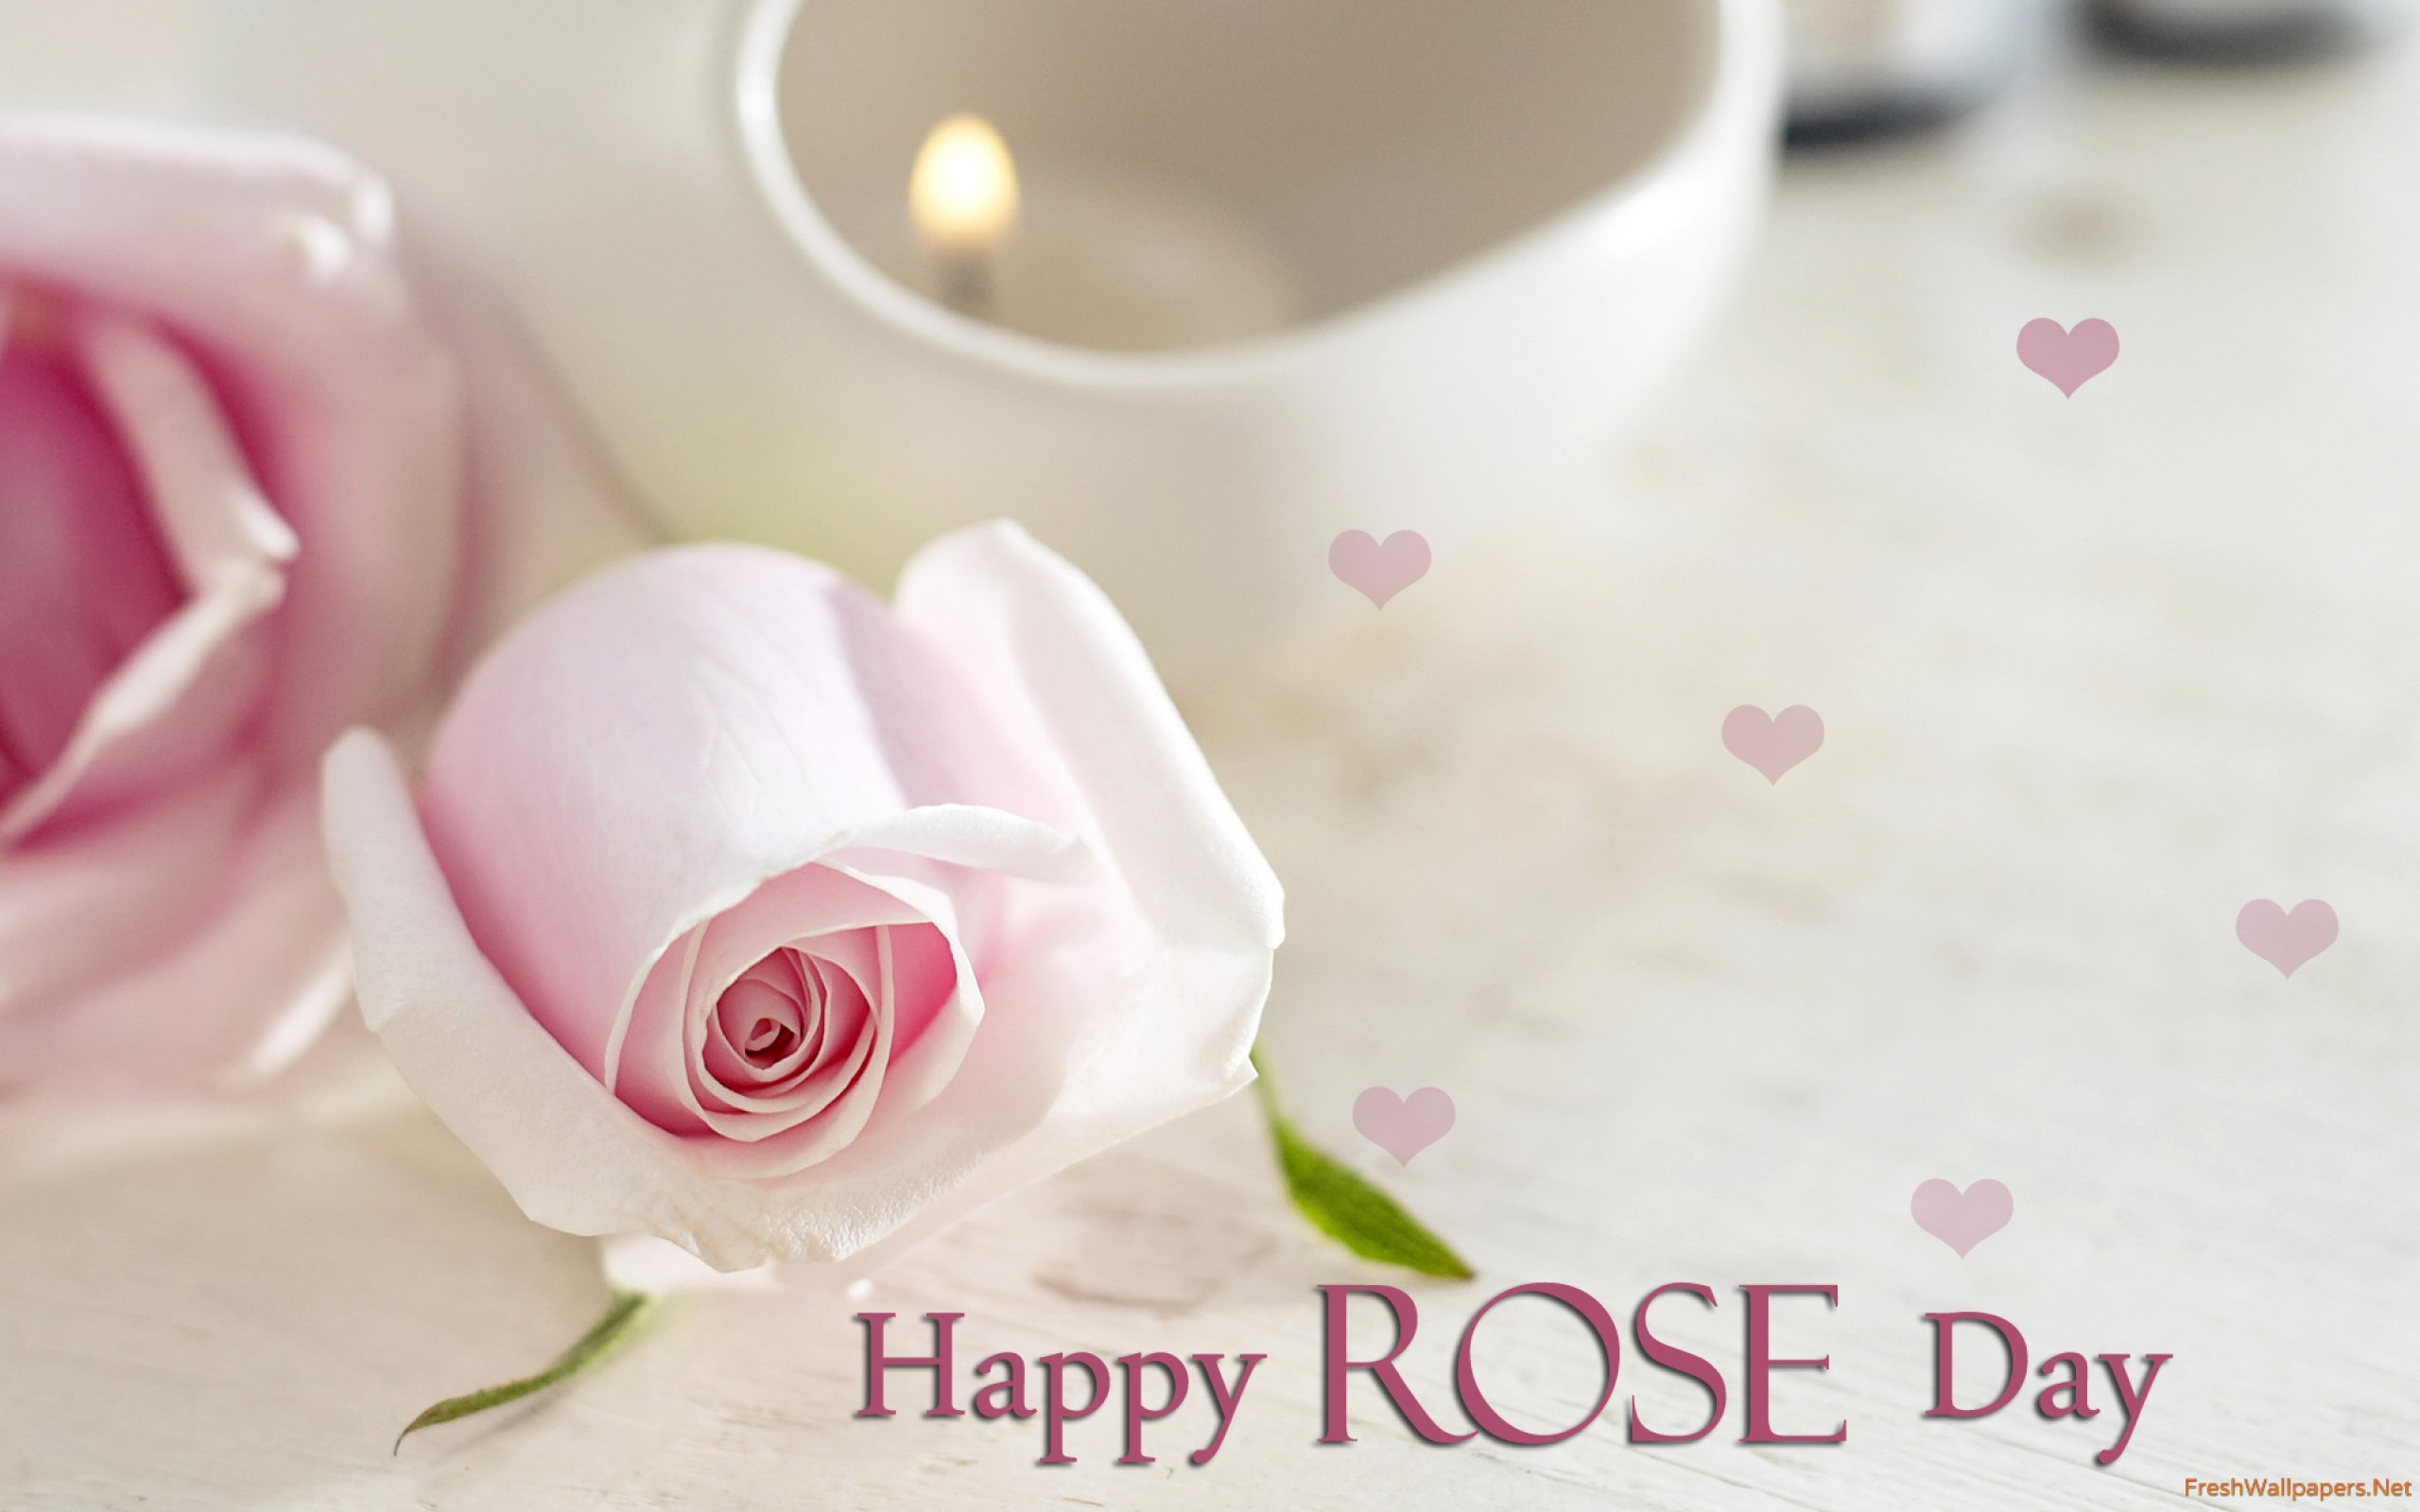 Happy Rose Day Wallpaper - Rose Day Wishes For Boyfriend , HD Wallpaper & Backgrounds